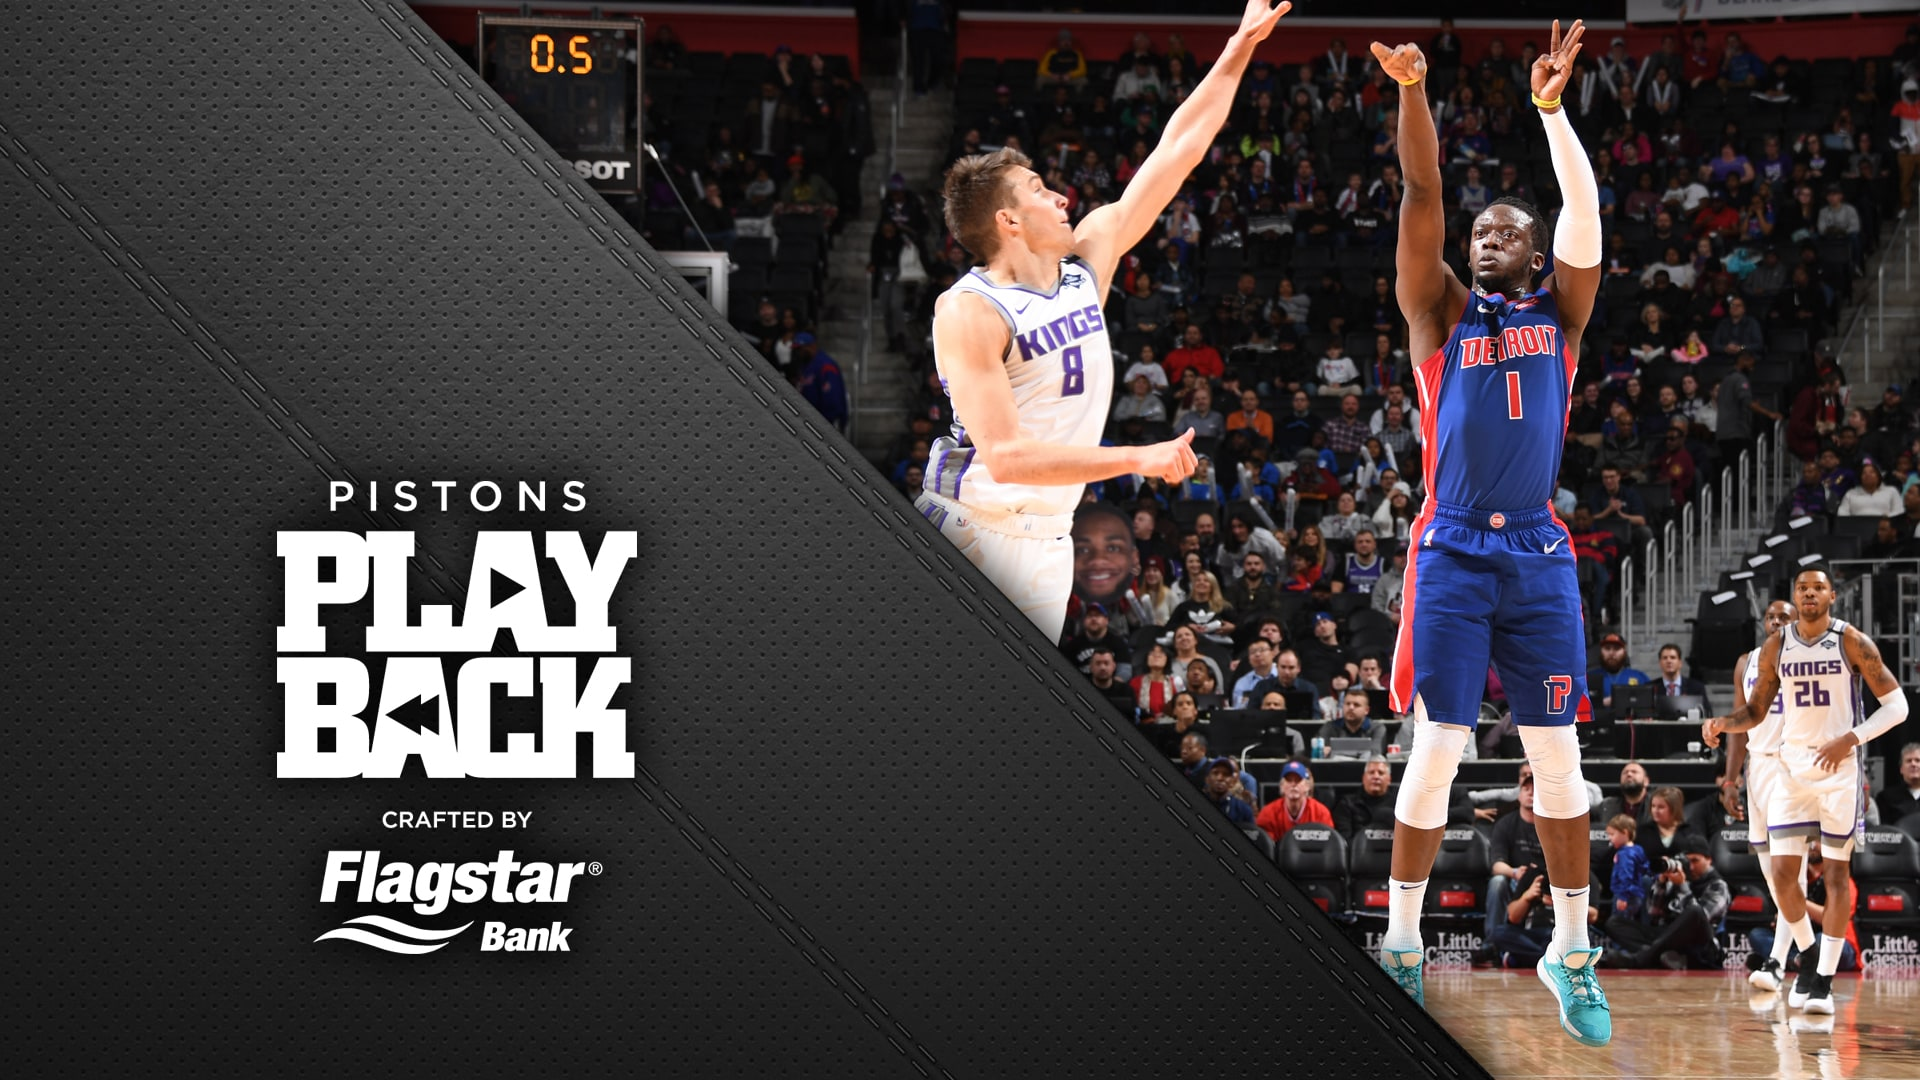 Pistons Playback, crafted by Flagstar: Pistons vs Kings